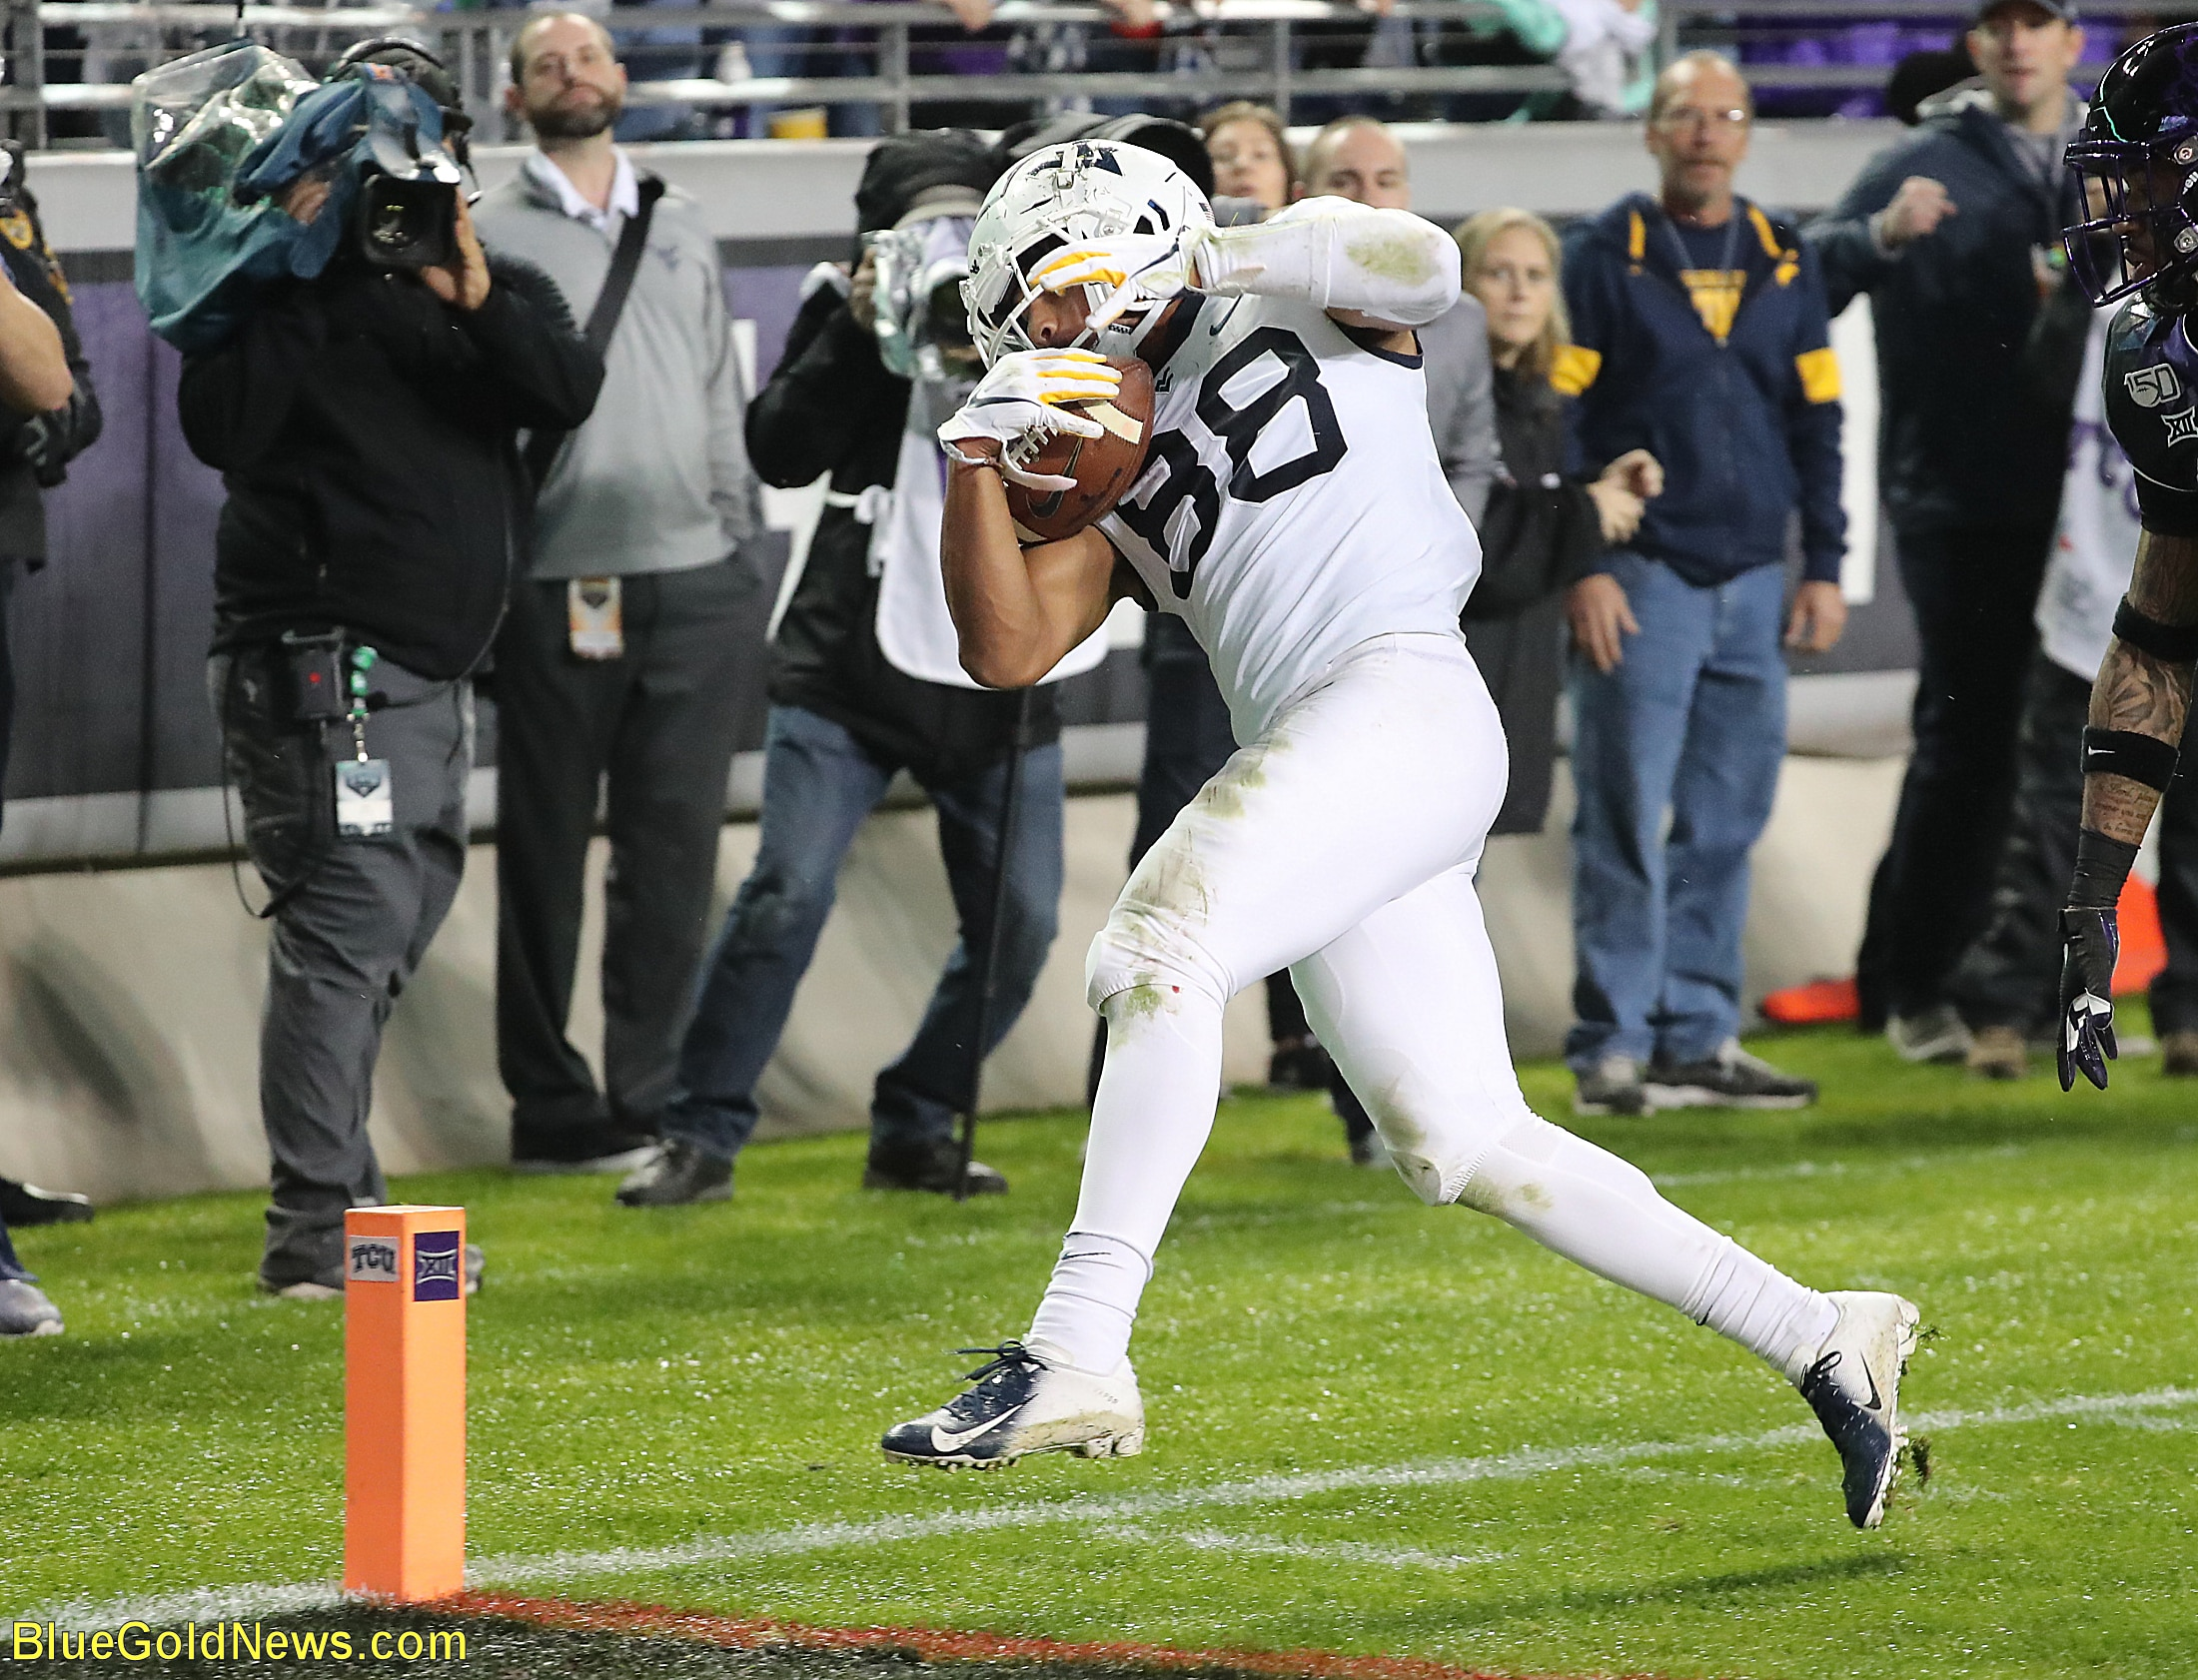 West Virginia receiver Isaiah Esdale taps inside the pylon for the winning touchdown against TCU